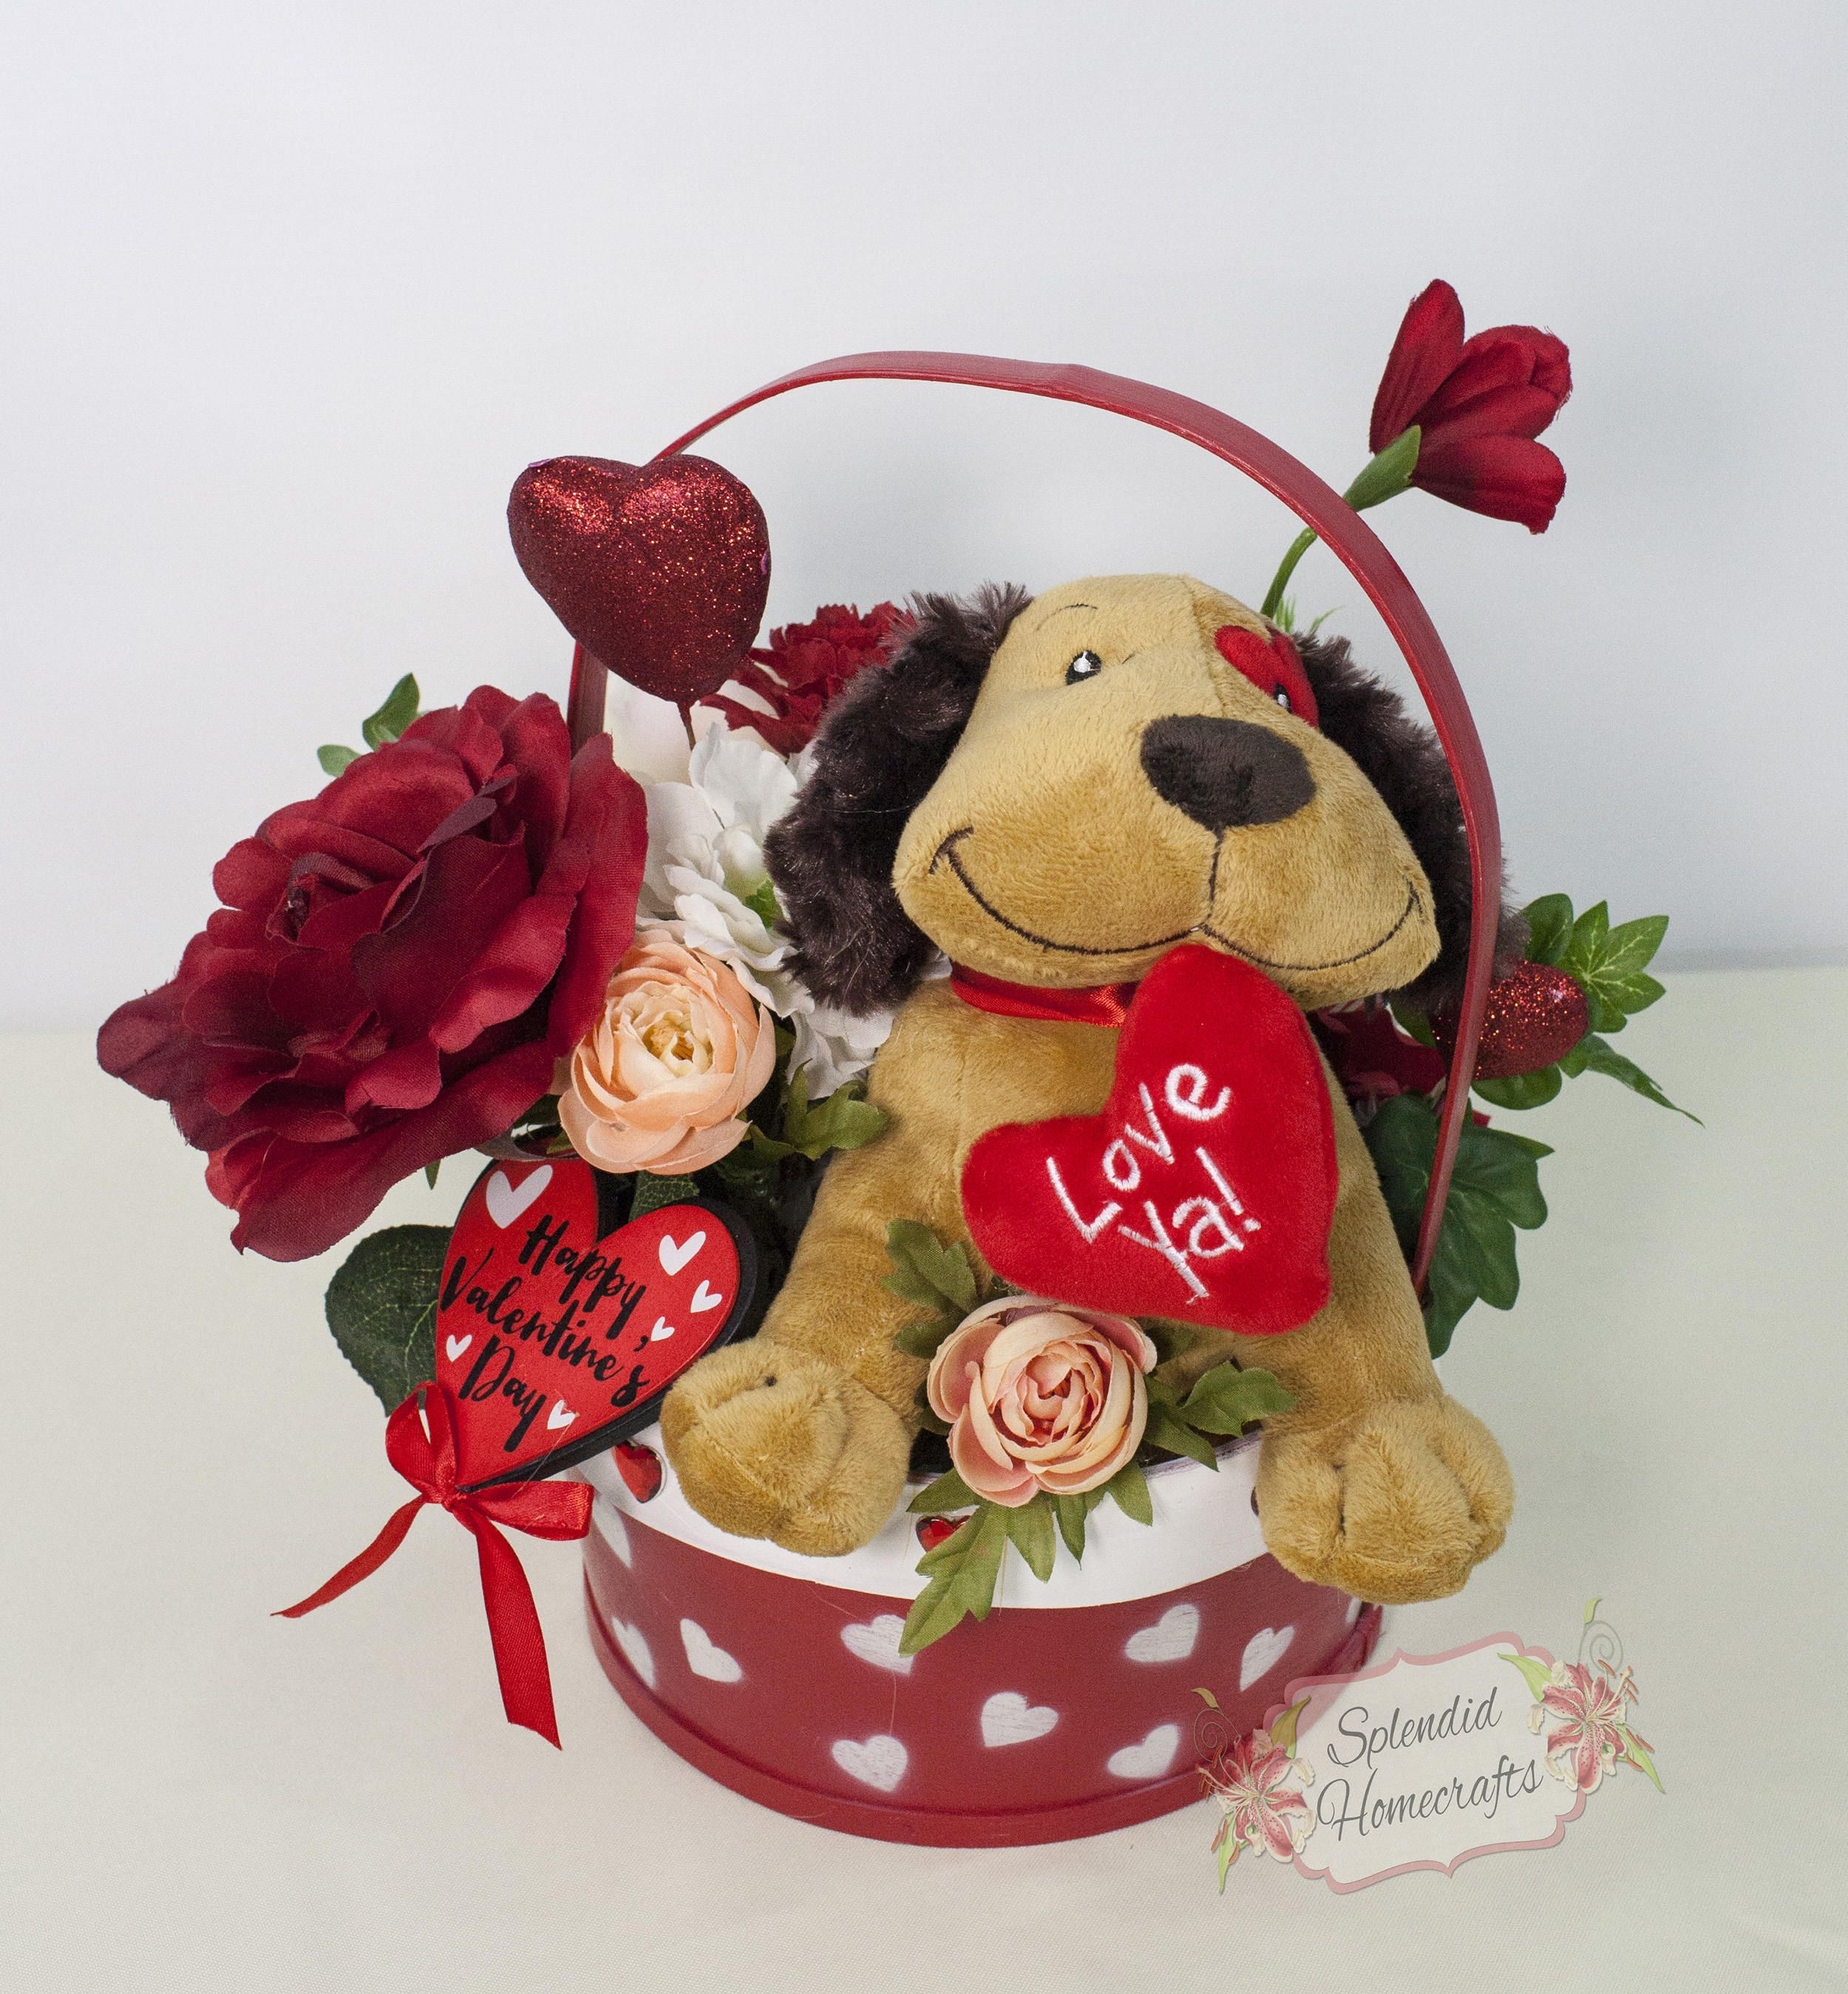 Good Valentine's Day gift for her for around $300